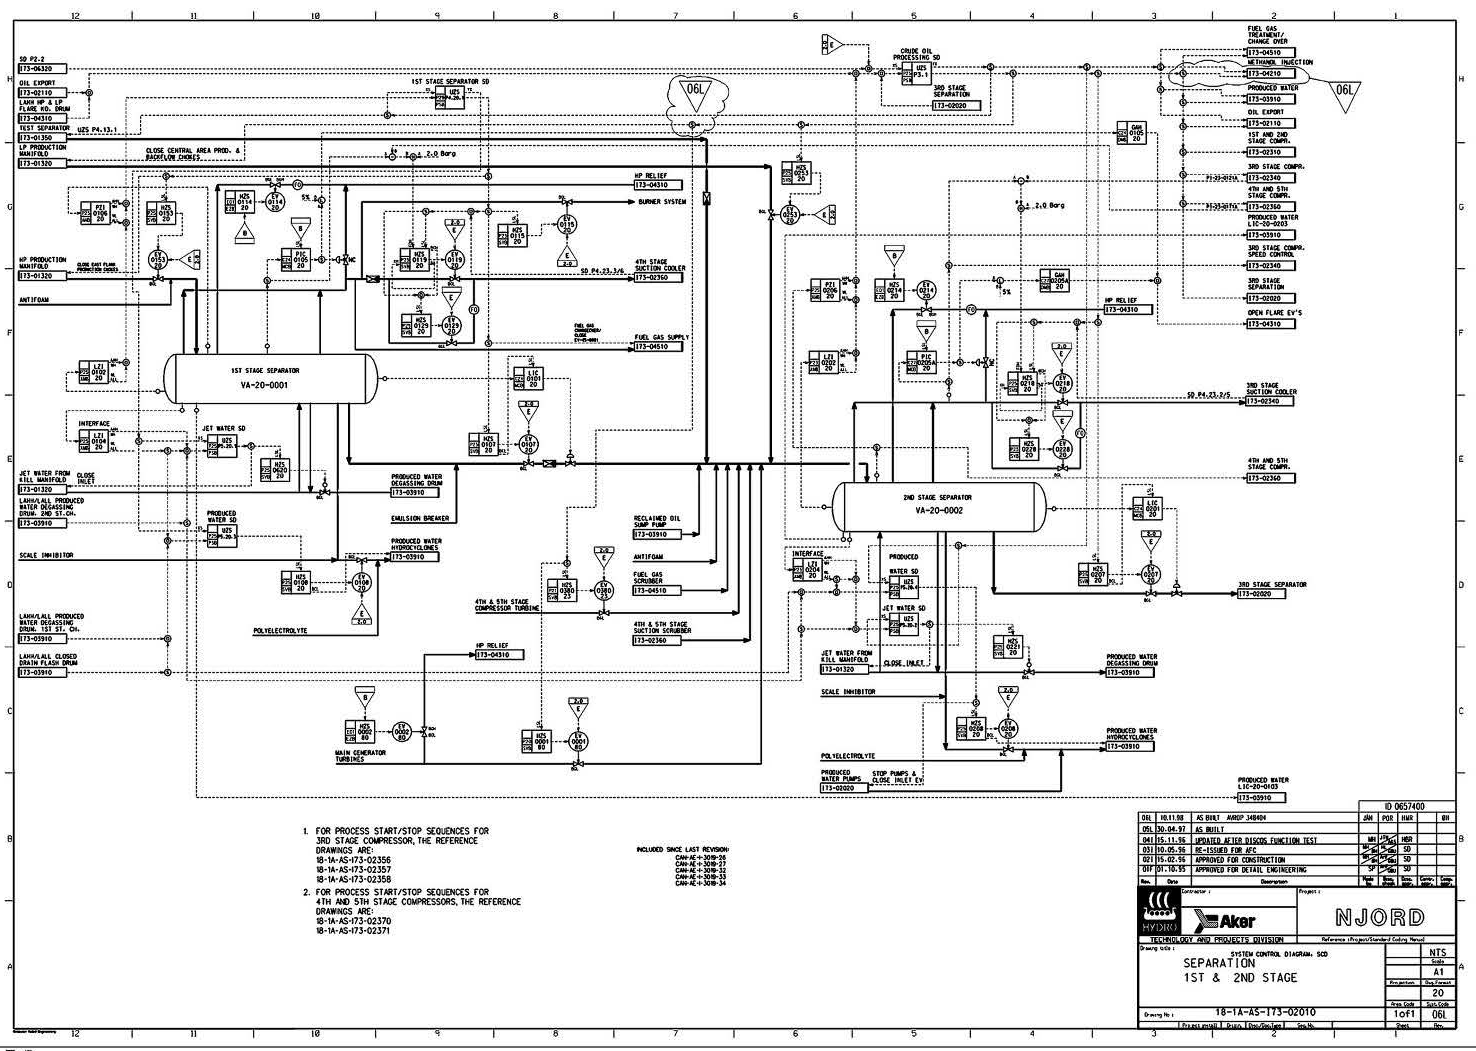 Basic Strobe Light Wiring Diagram as well 8790 Autopot Kit Autopot Xl 100 Pots 25l as well Schematic Riser Diagram moreover Hvac Wire Harness besides Fuel System Schematic Color Code. on sprinkler system control box